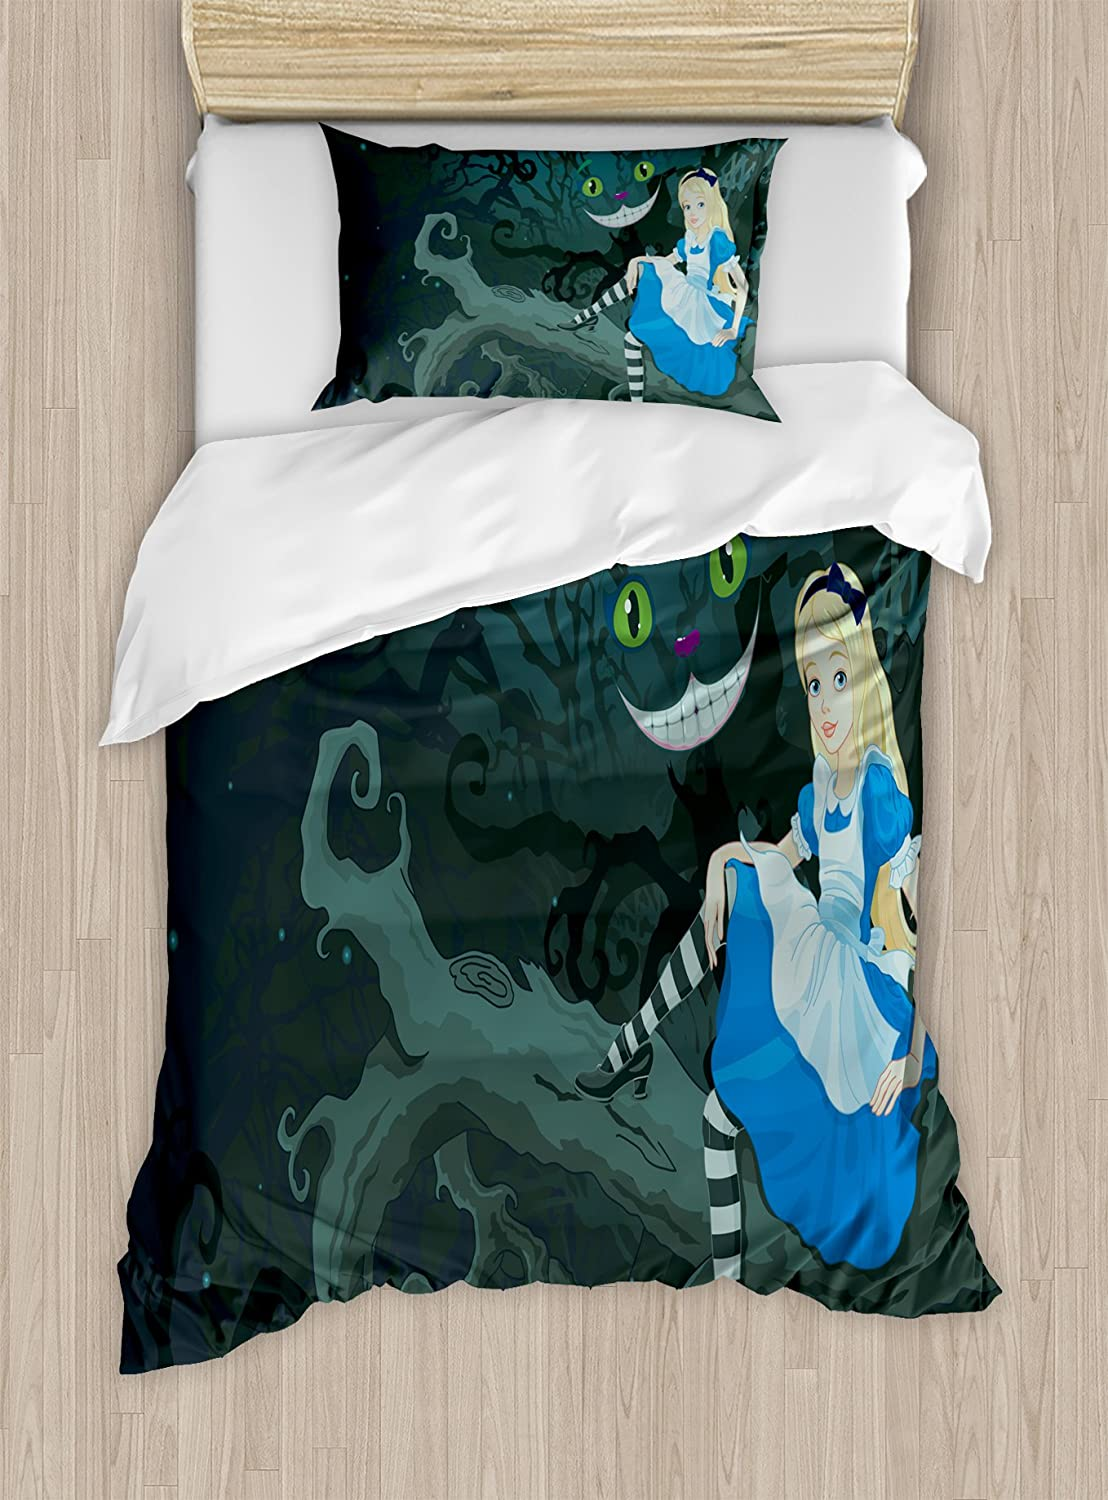 Ambesonne Alice in Wonderland Duvet Cover Set Twin Size, Alice Sitting on Branch and Chescire Cat in Darkness Cartoon Style, Decorative 2 Piece Bedding Set with 1 Pillow Sham, Blue Black